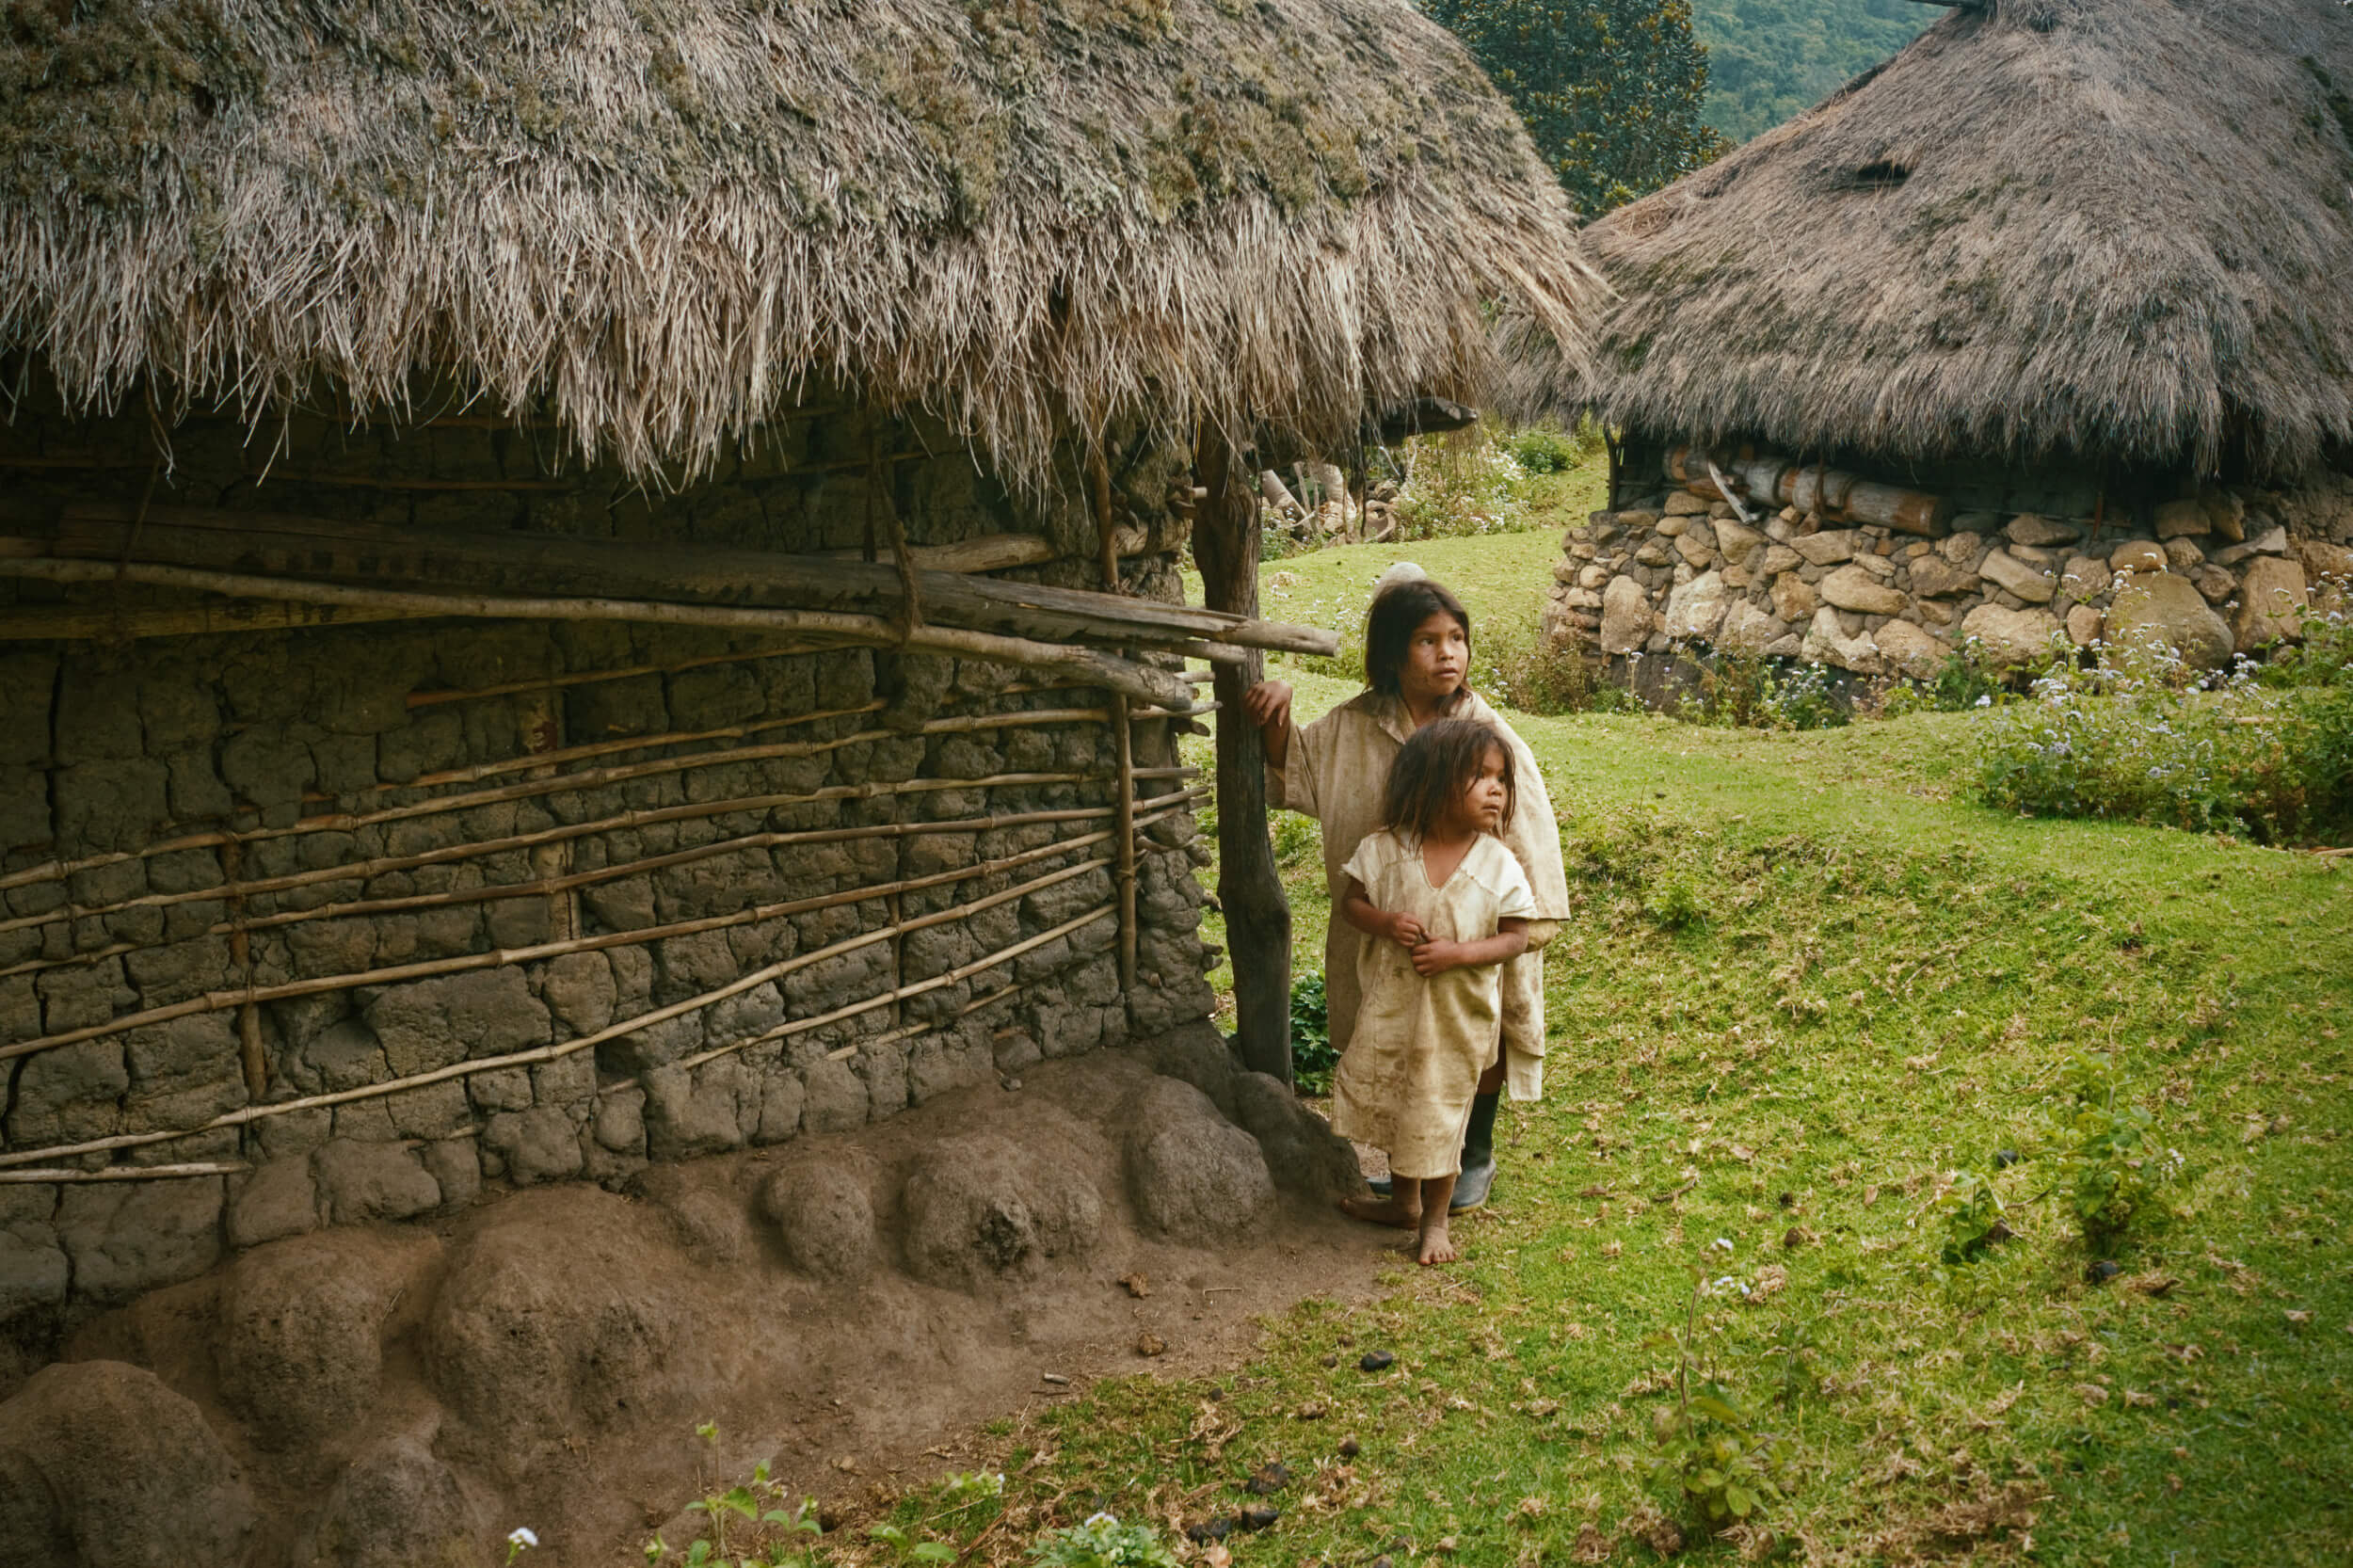 arhuaco children by their home